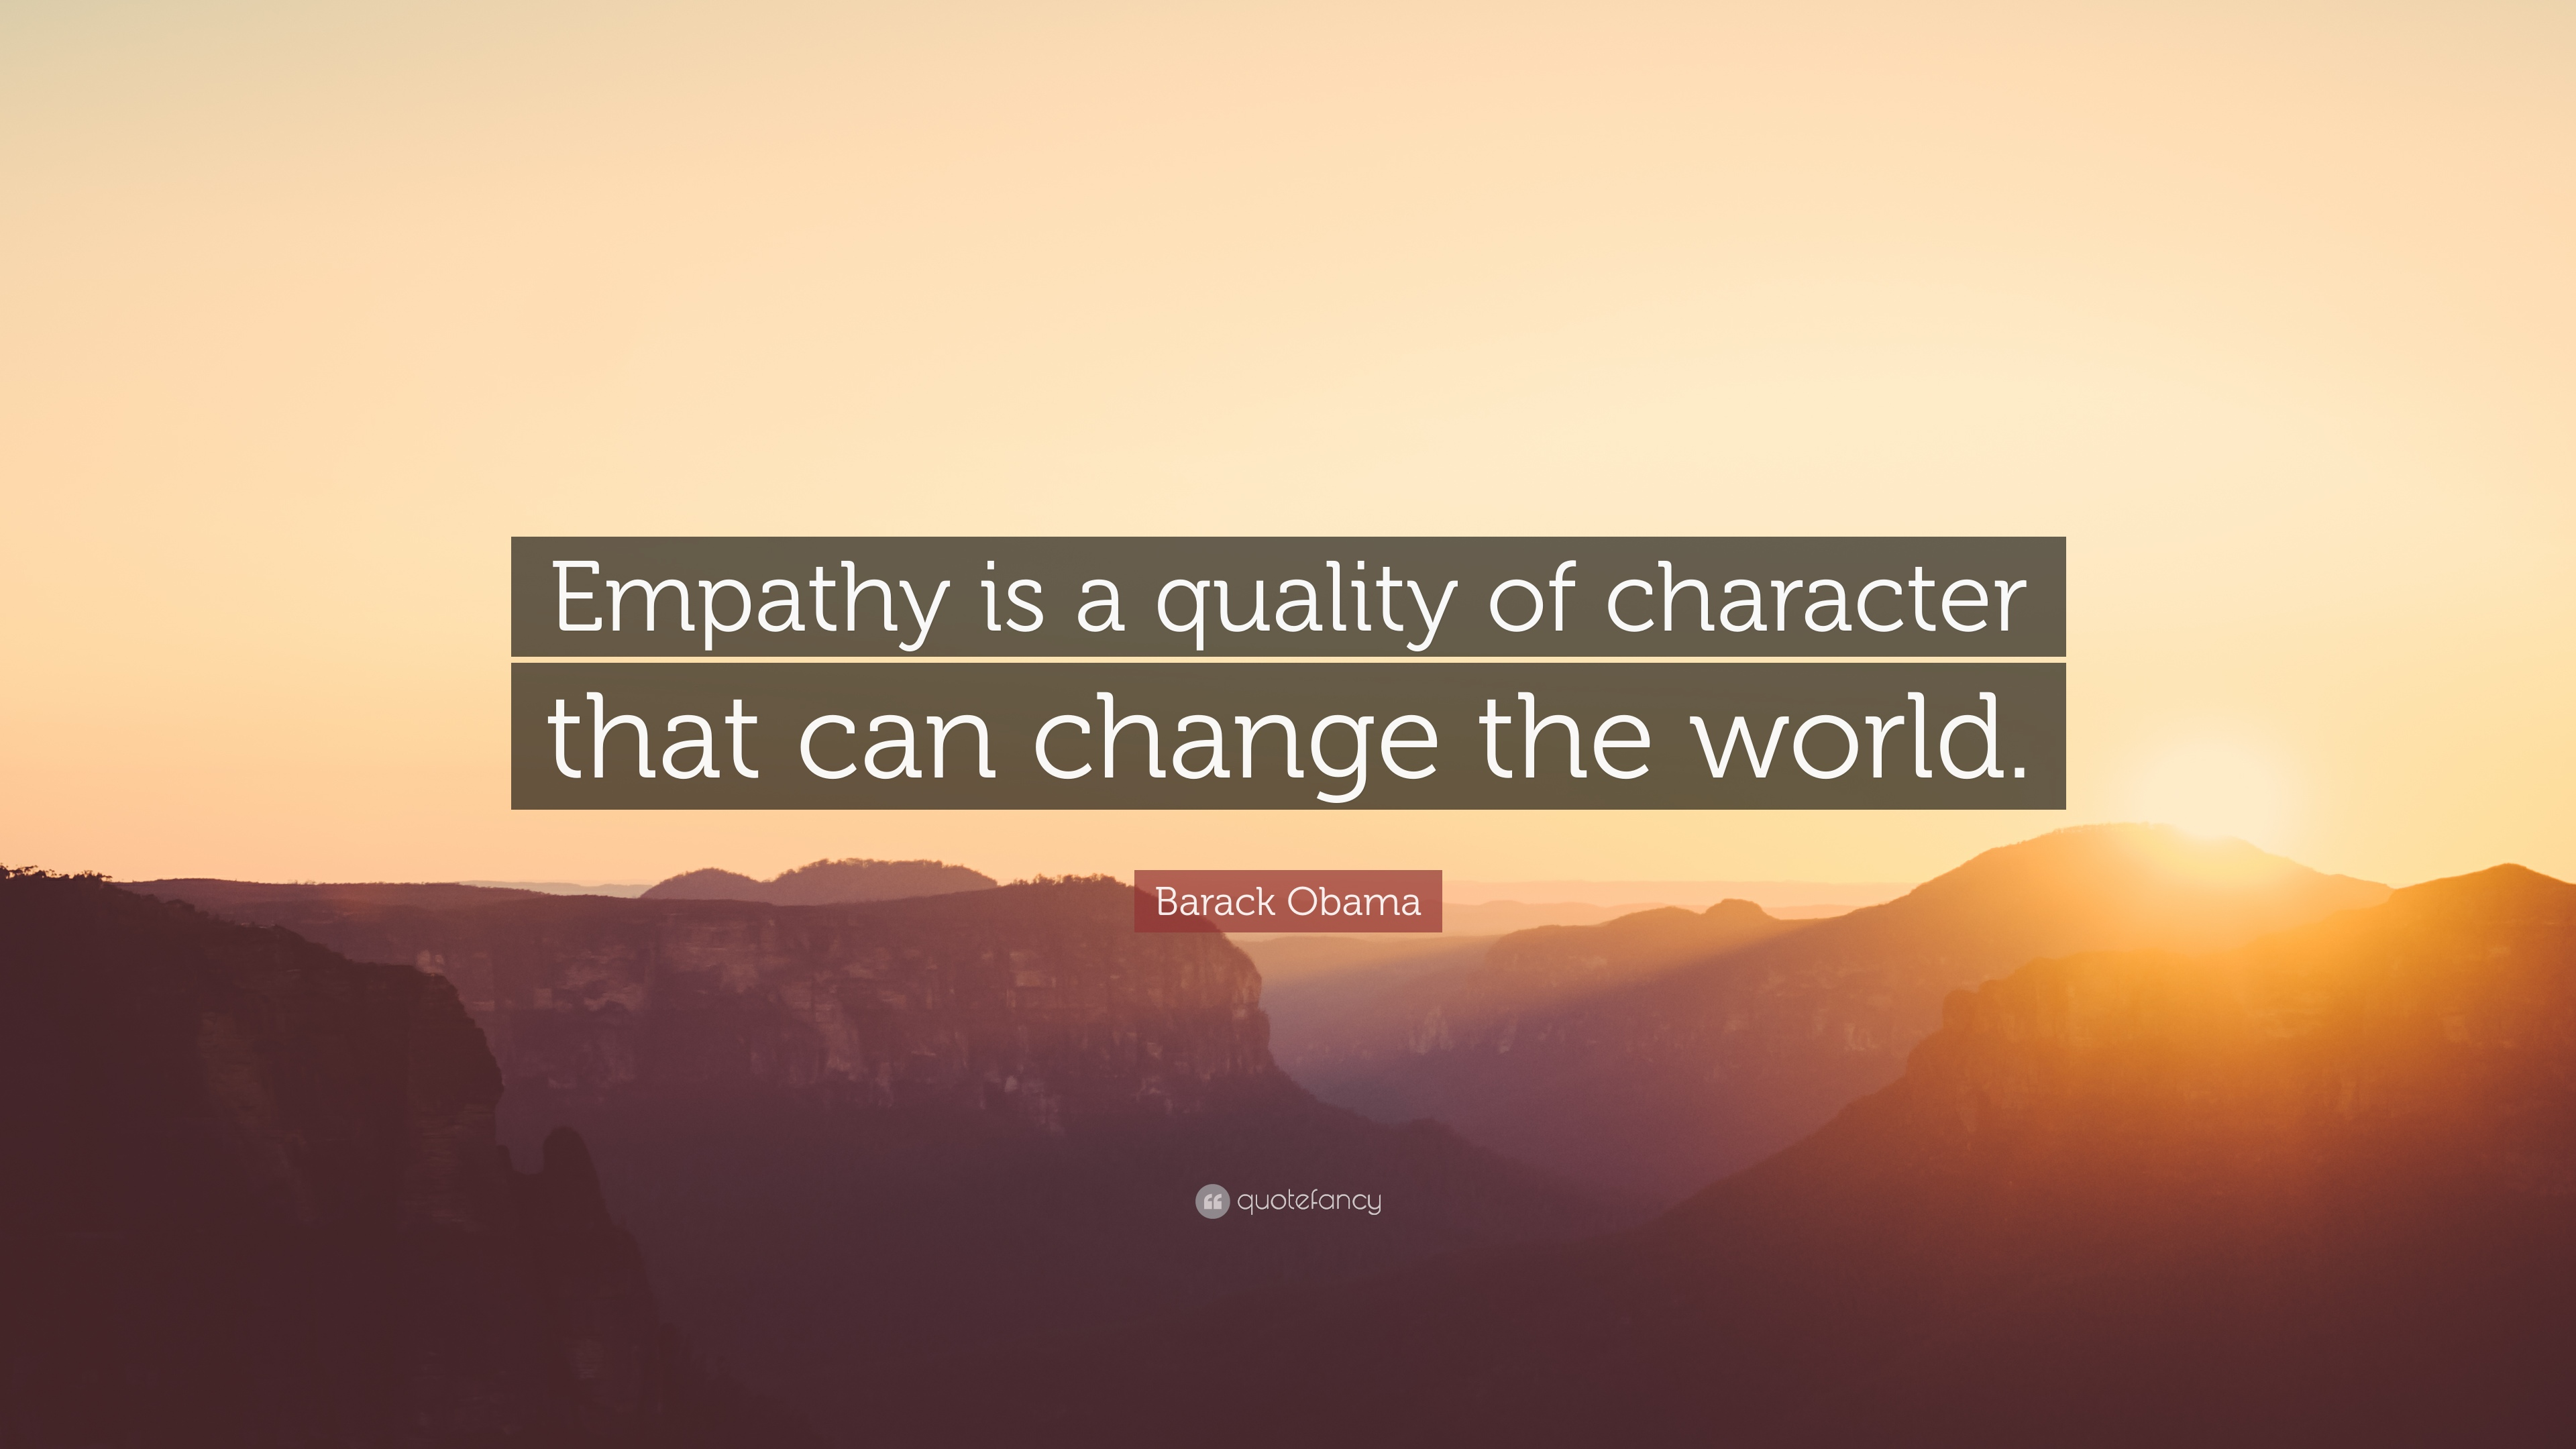 barack obama quote �empathy is a quality of character